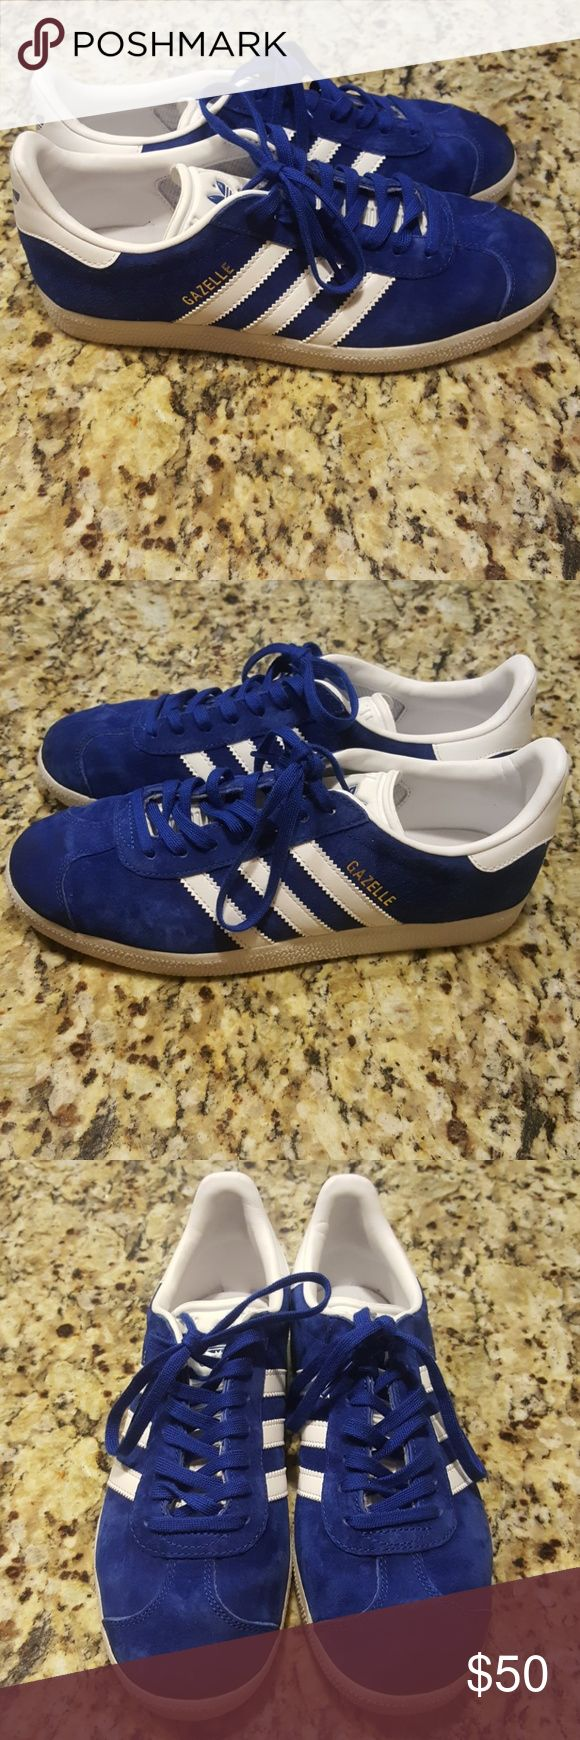 ADIDAS GAZELLE UNISEX Sneakers are made with  Pigskin leather upper in archival colors.Contrasting 3-Stripes and heel tab that echo early '90s style.Rubber outsole for durability and traction.SNEAKERS ARE USED IN GREAT CONDITION AS SHOWN PLEASE REVIEW ALL PIX SOLE A LITTLE  DIRTY OTHER THEN THAT BEAUTIFUL 😊(LADIES FITS A 7.5) adidas Shoes Sneakers